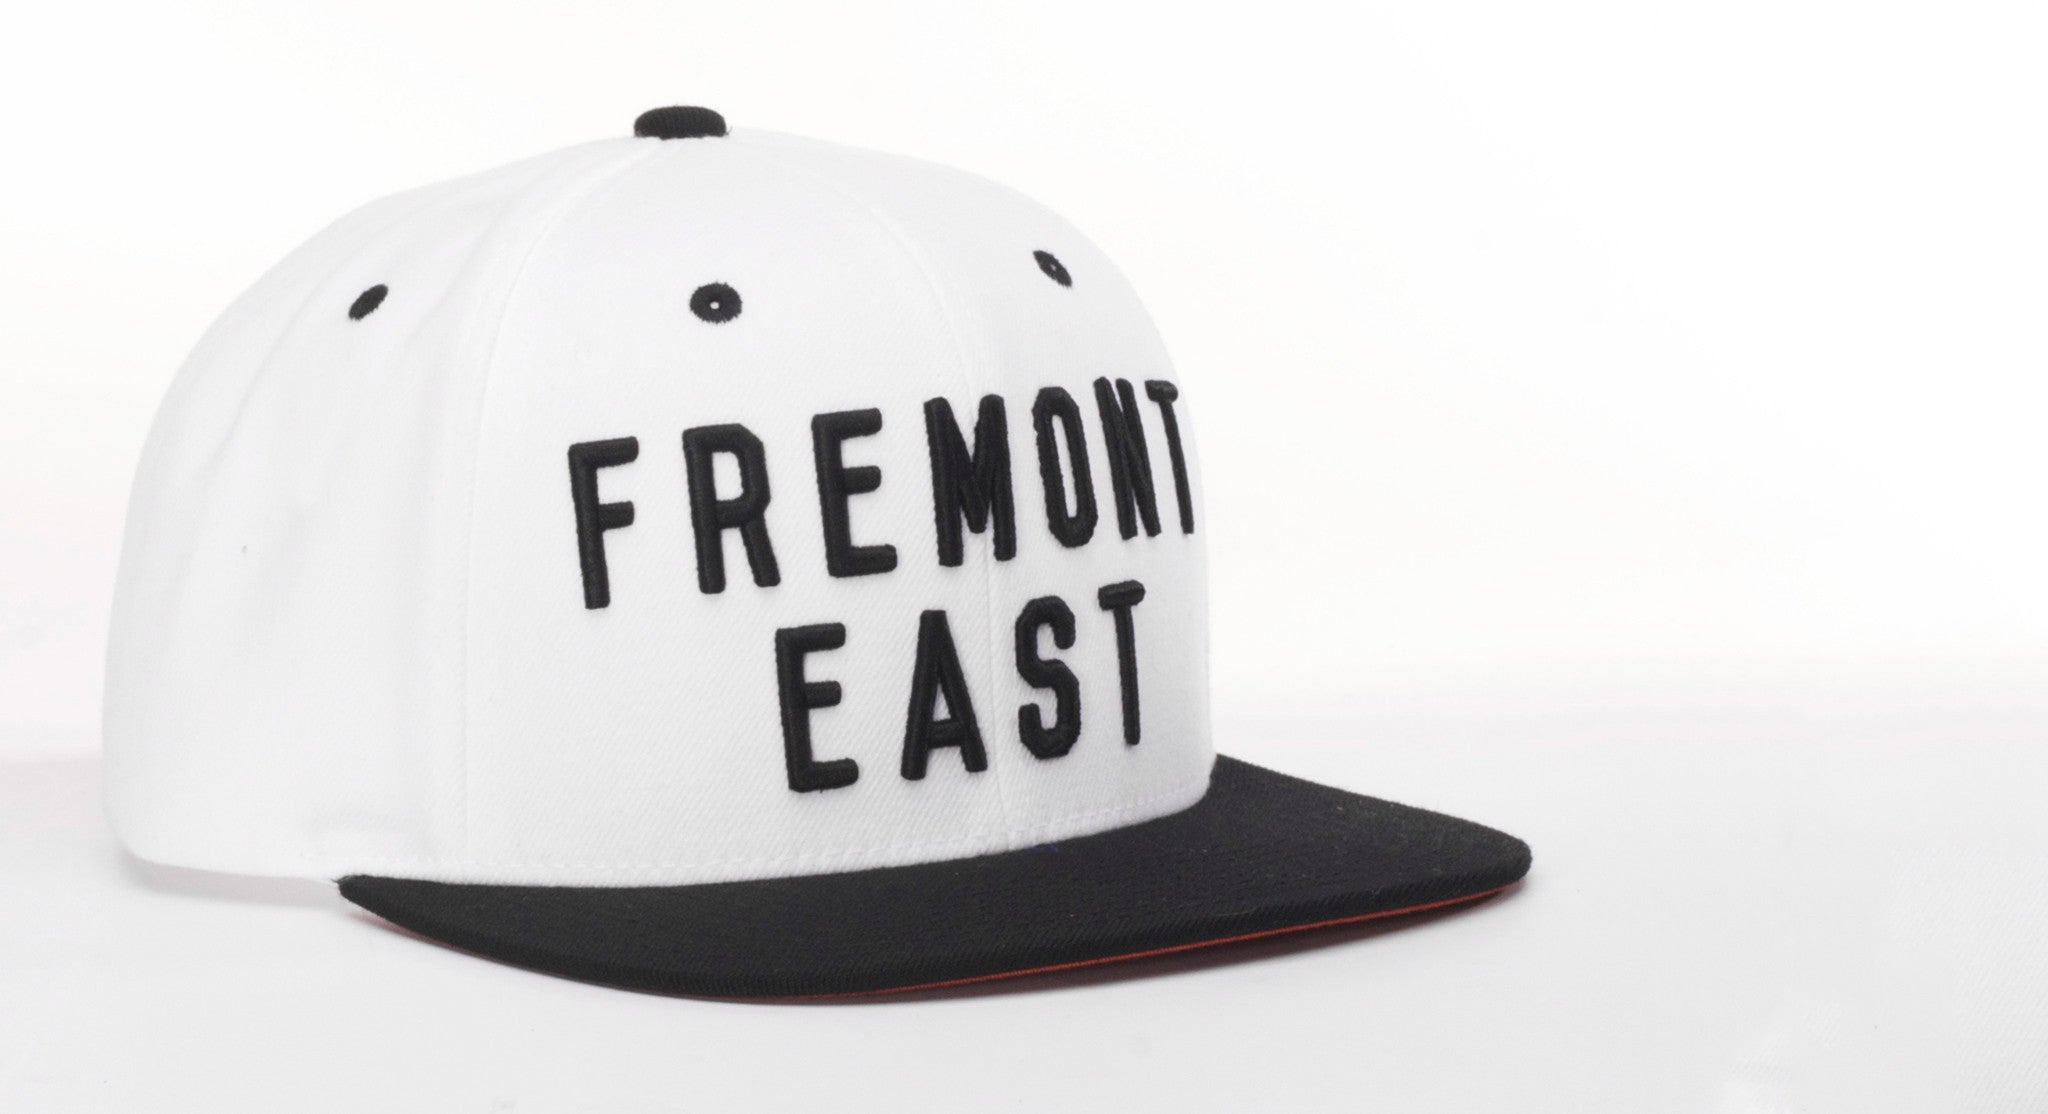 Downtown Fremont East Snapback Hat Black and White